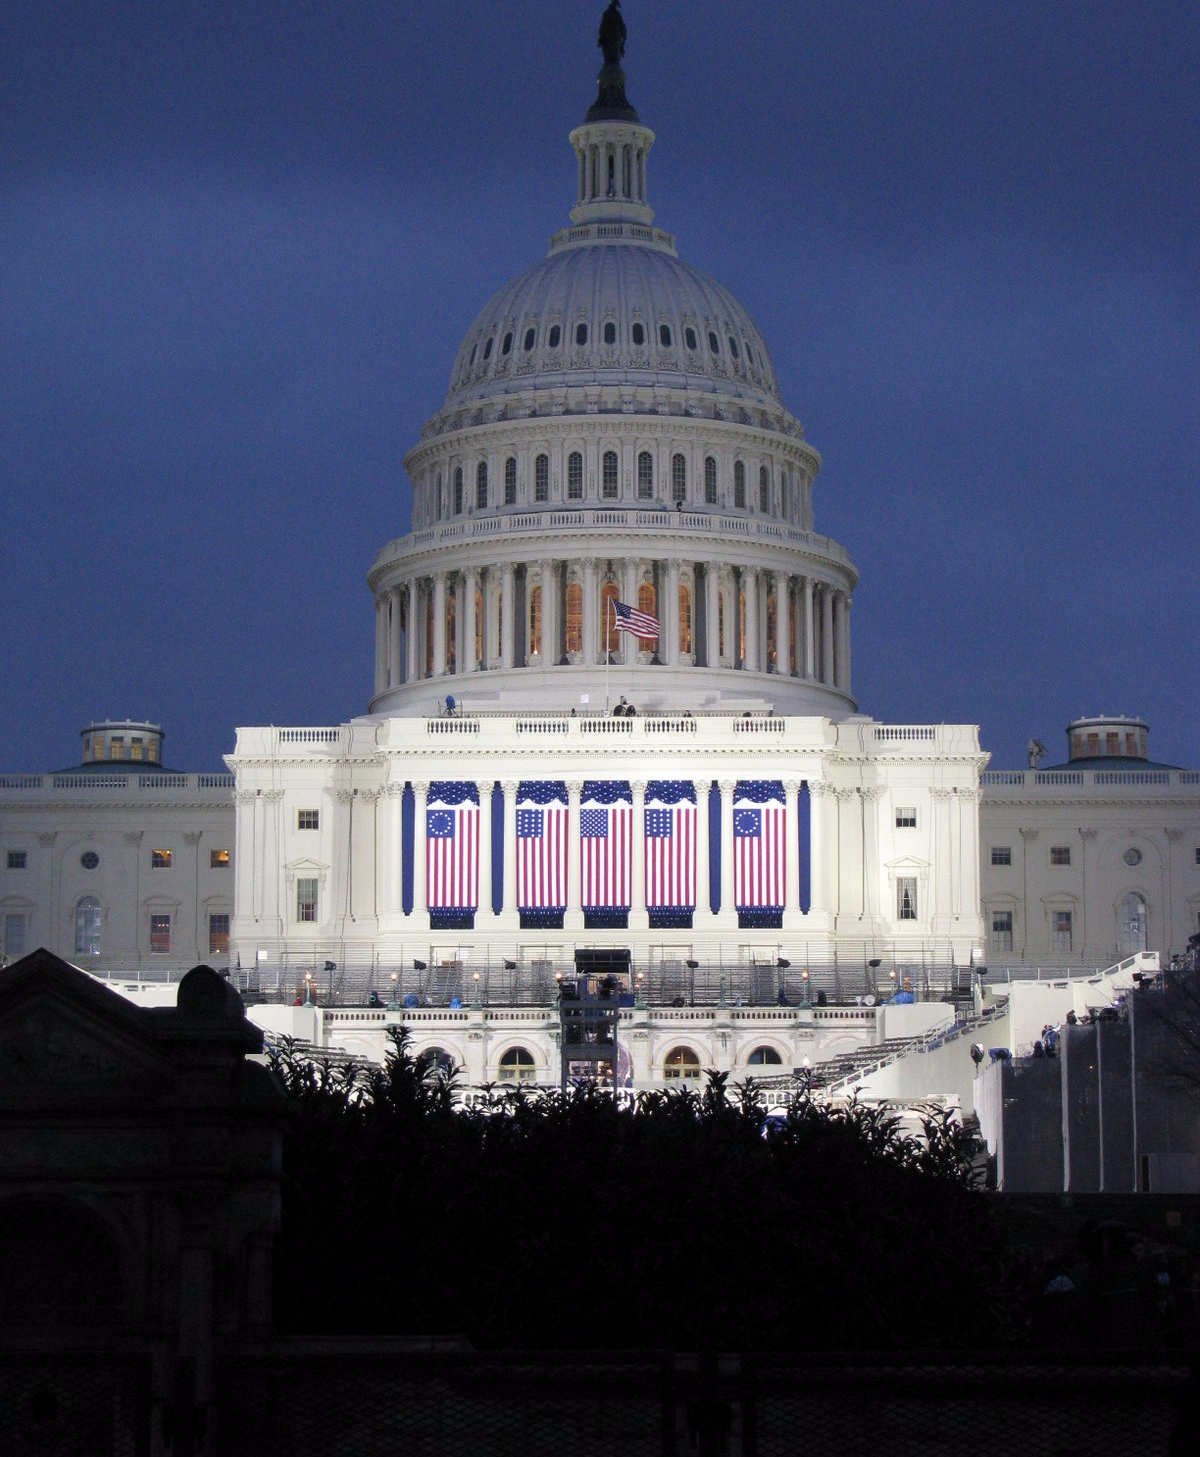 The United States capitol building in the dark, adorned in American flags and spotlights